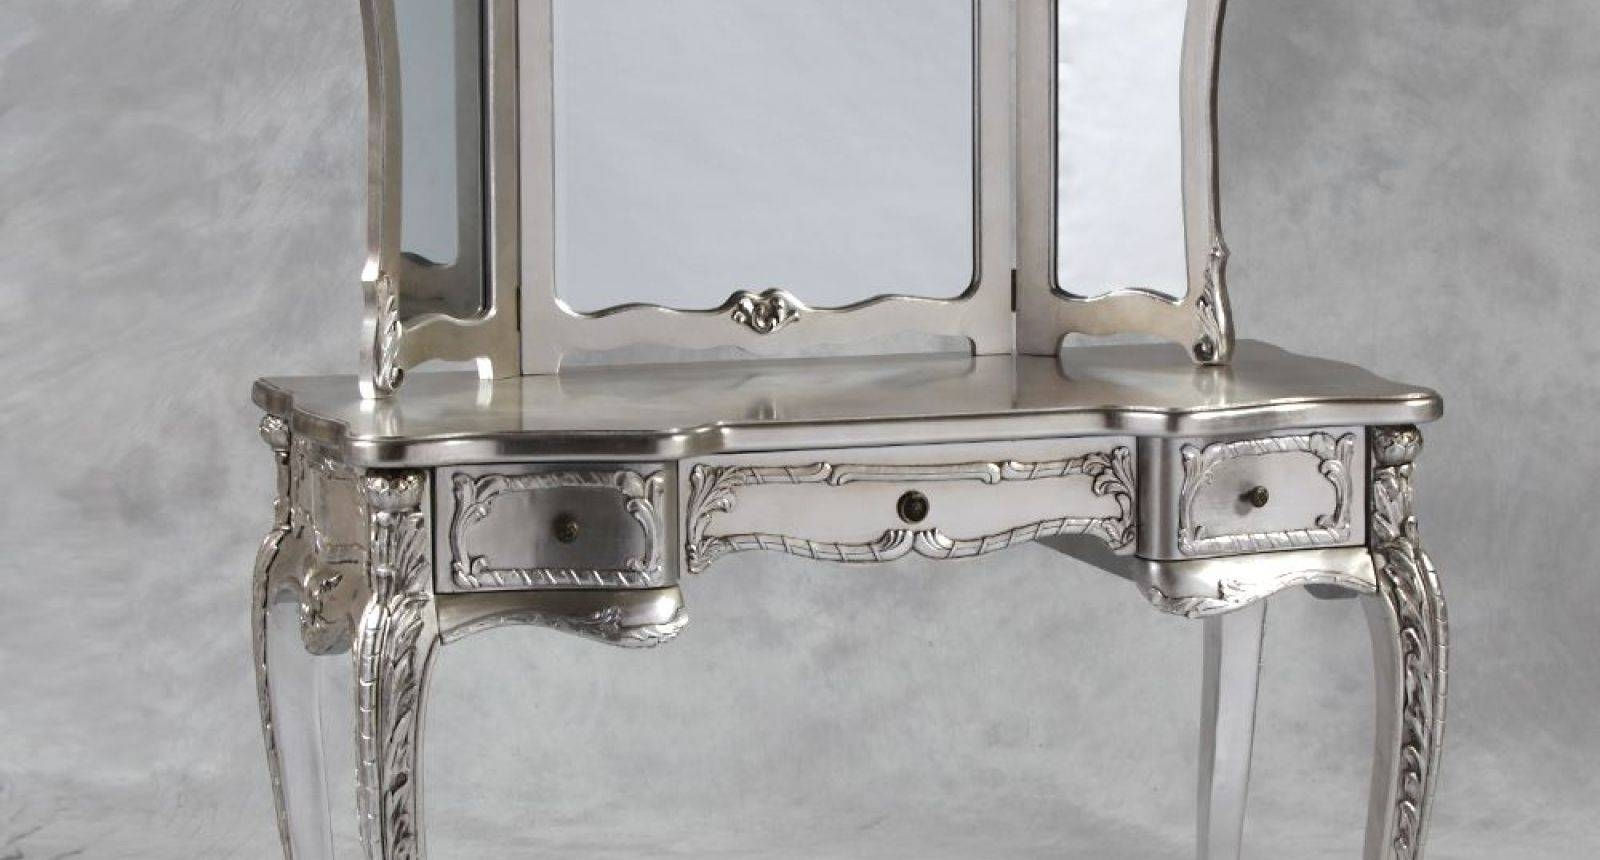 Mirror : Vanity And Mirror Set 19 Stunning Decor With Vanity Set intended for Decorative Table Mirrors (Image 11 of 15)